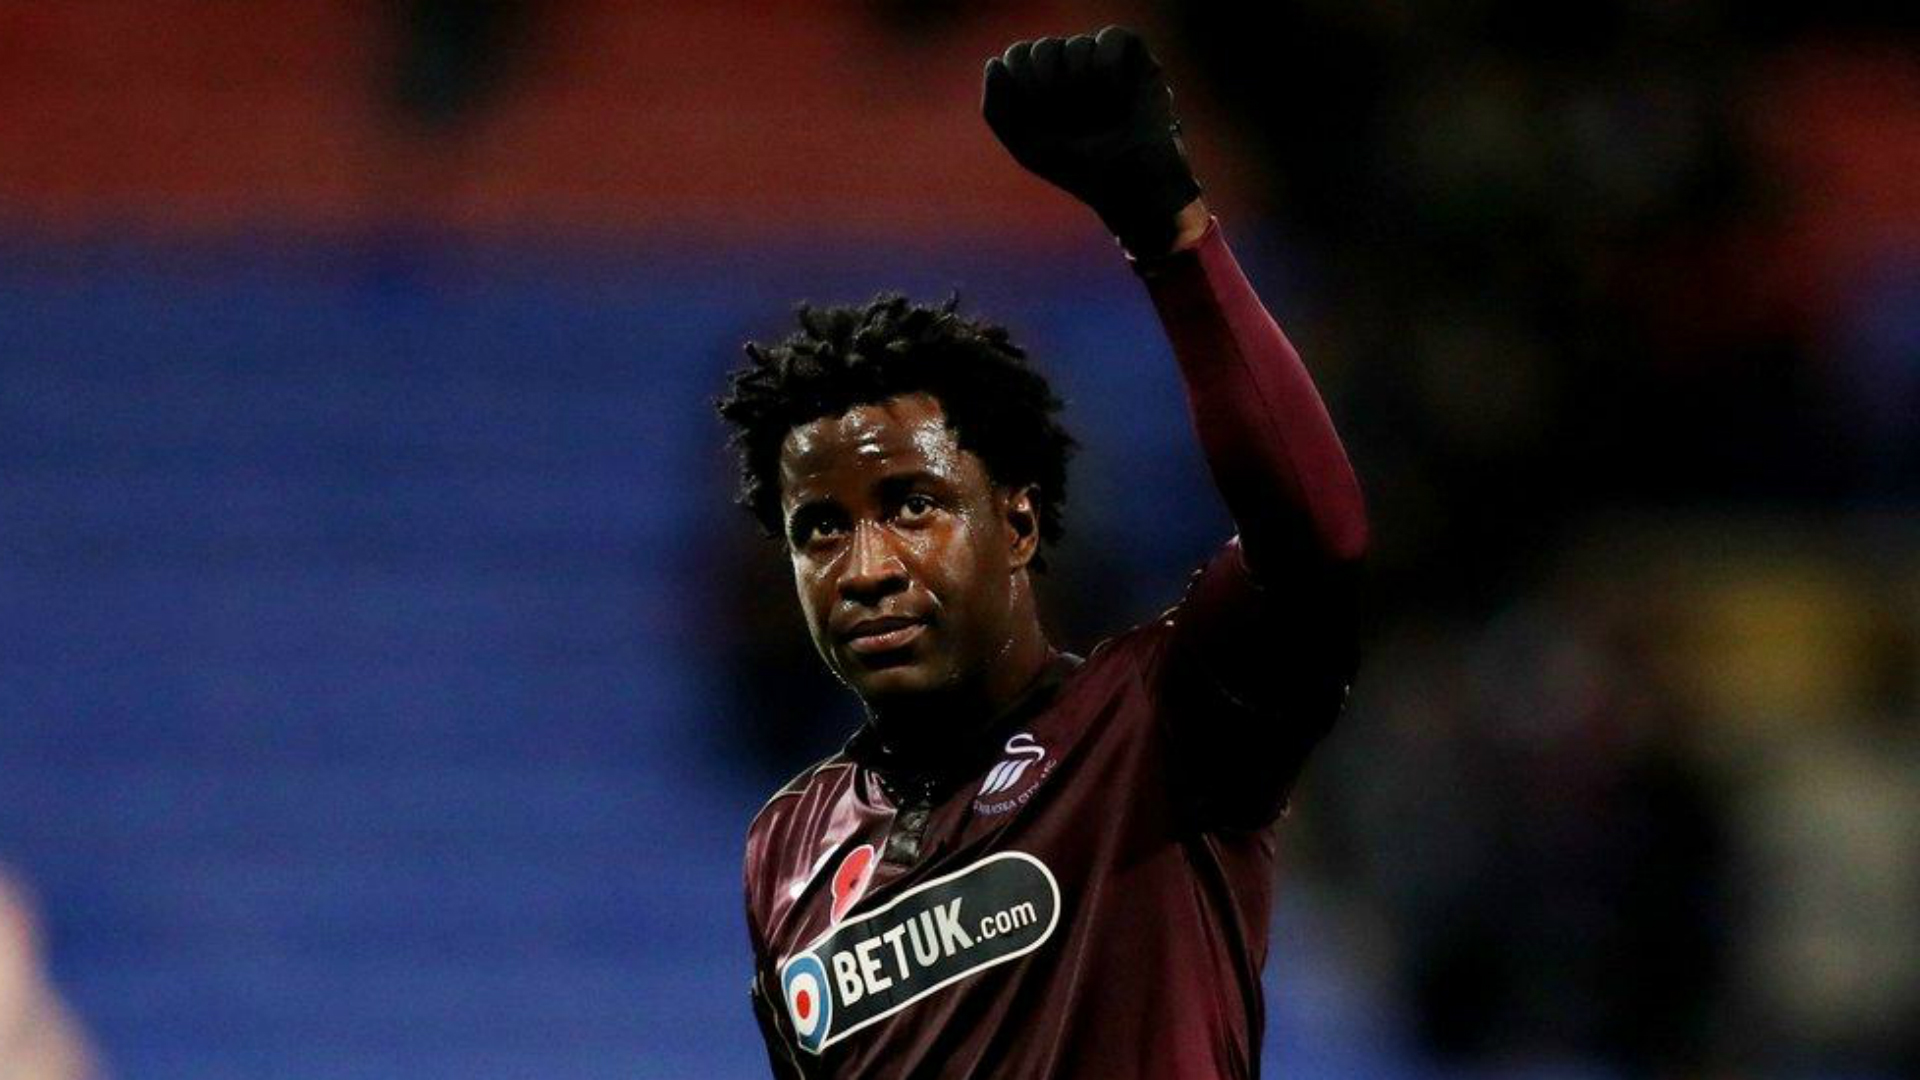 Bony: Former Manchester City striker 'impatient' to play football again